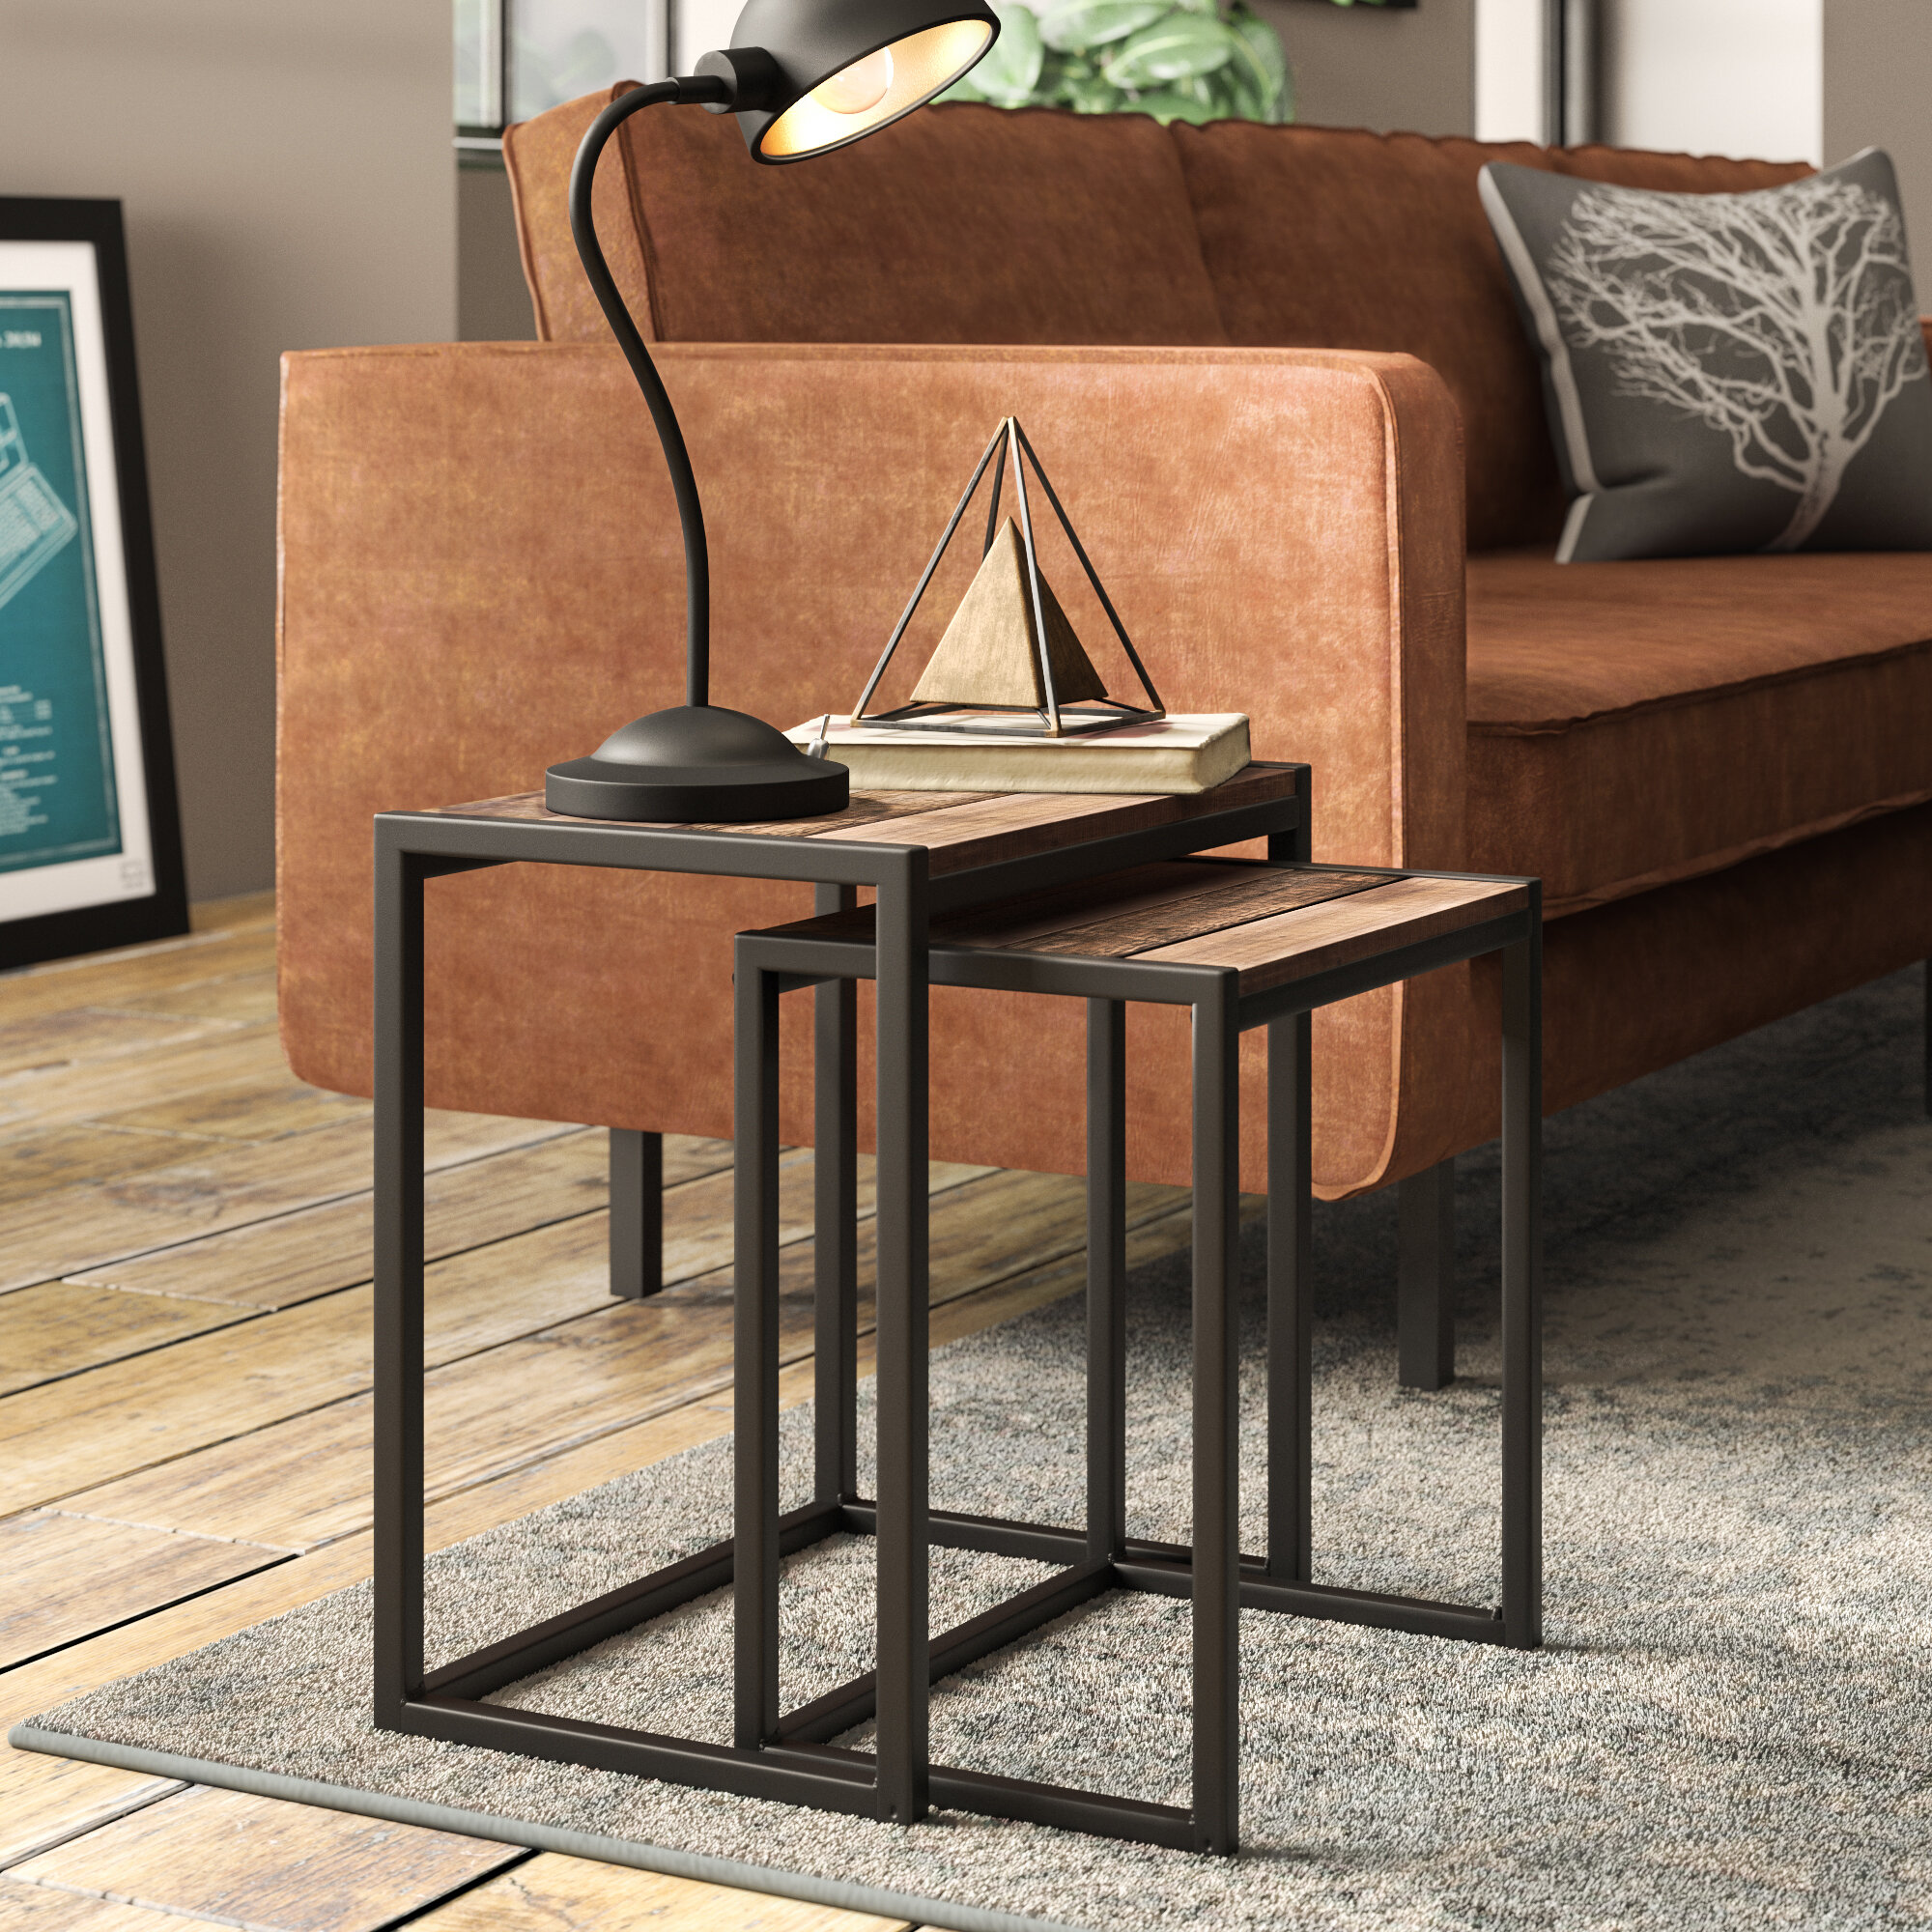 c826f605a1501 Williston Forge Amesbury 2 Piece Nest of Tables & Reviews   Wayfair.co.uk